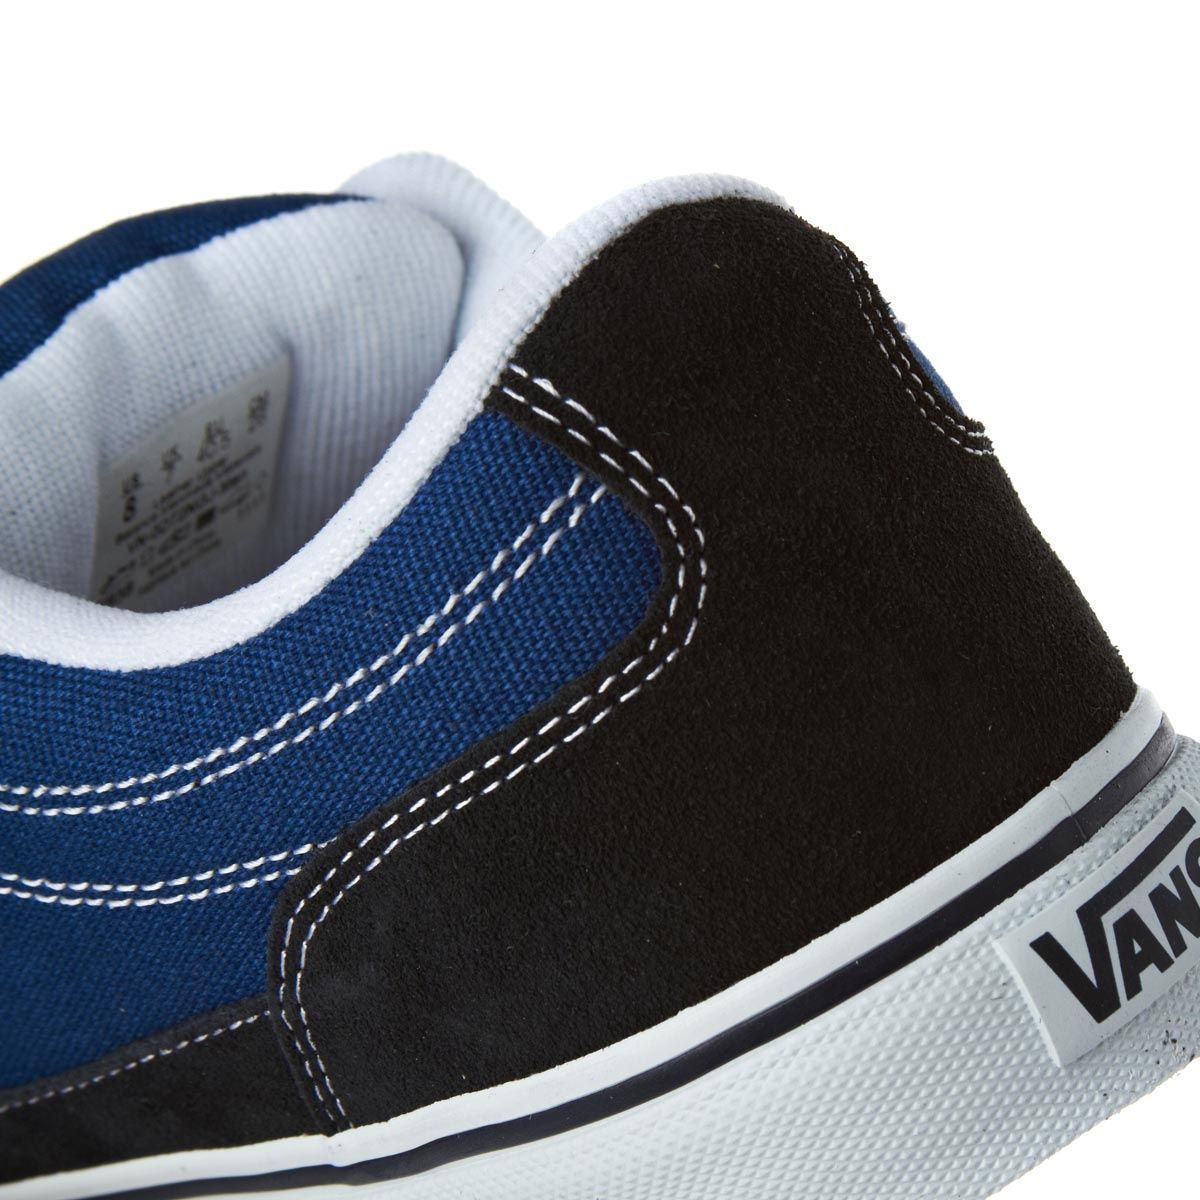 Vans Bearcat Navy/STV Navy Men's Classic Skate Shoes Size 9